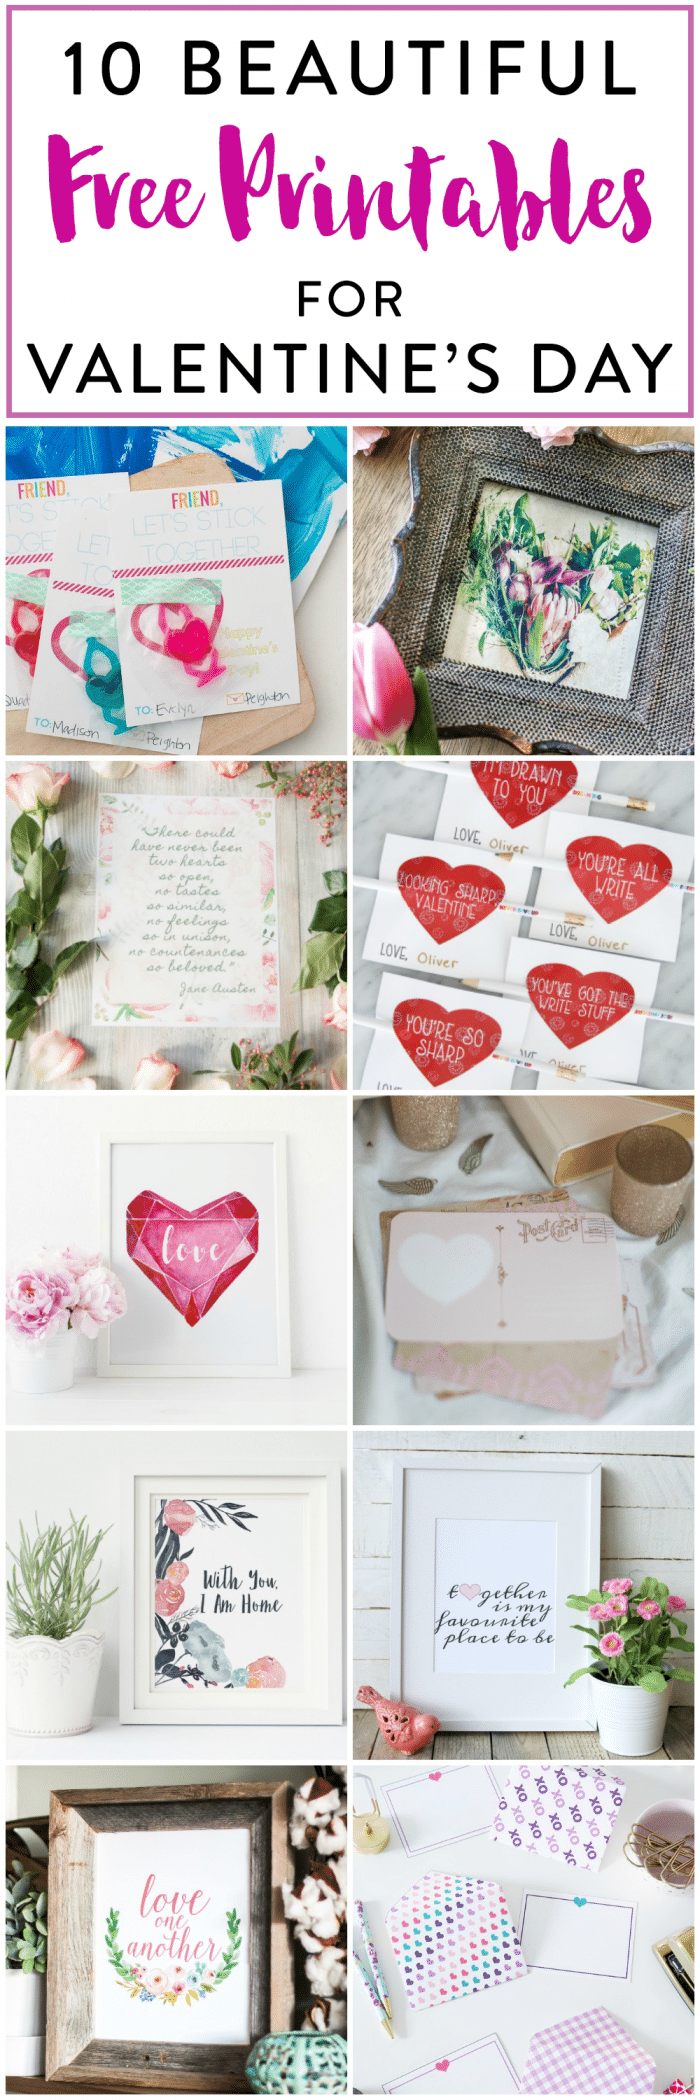 10 Beautiful Free Printables for Valentine's Day